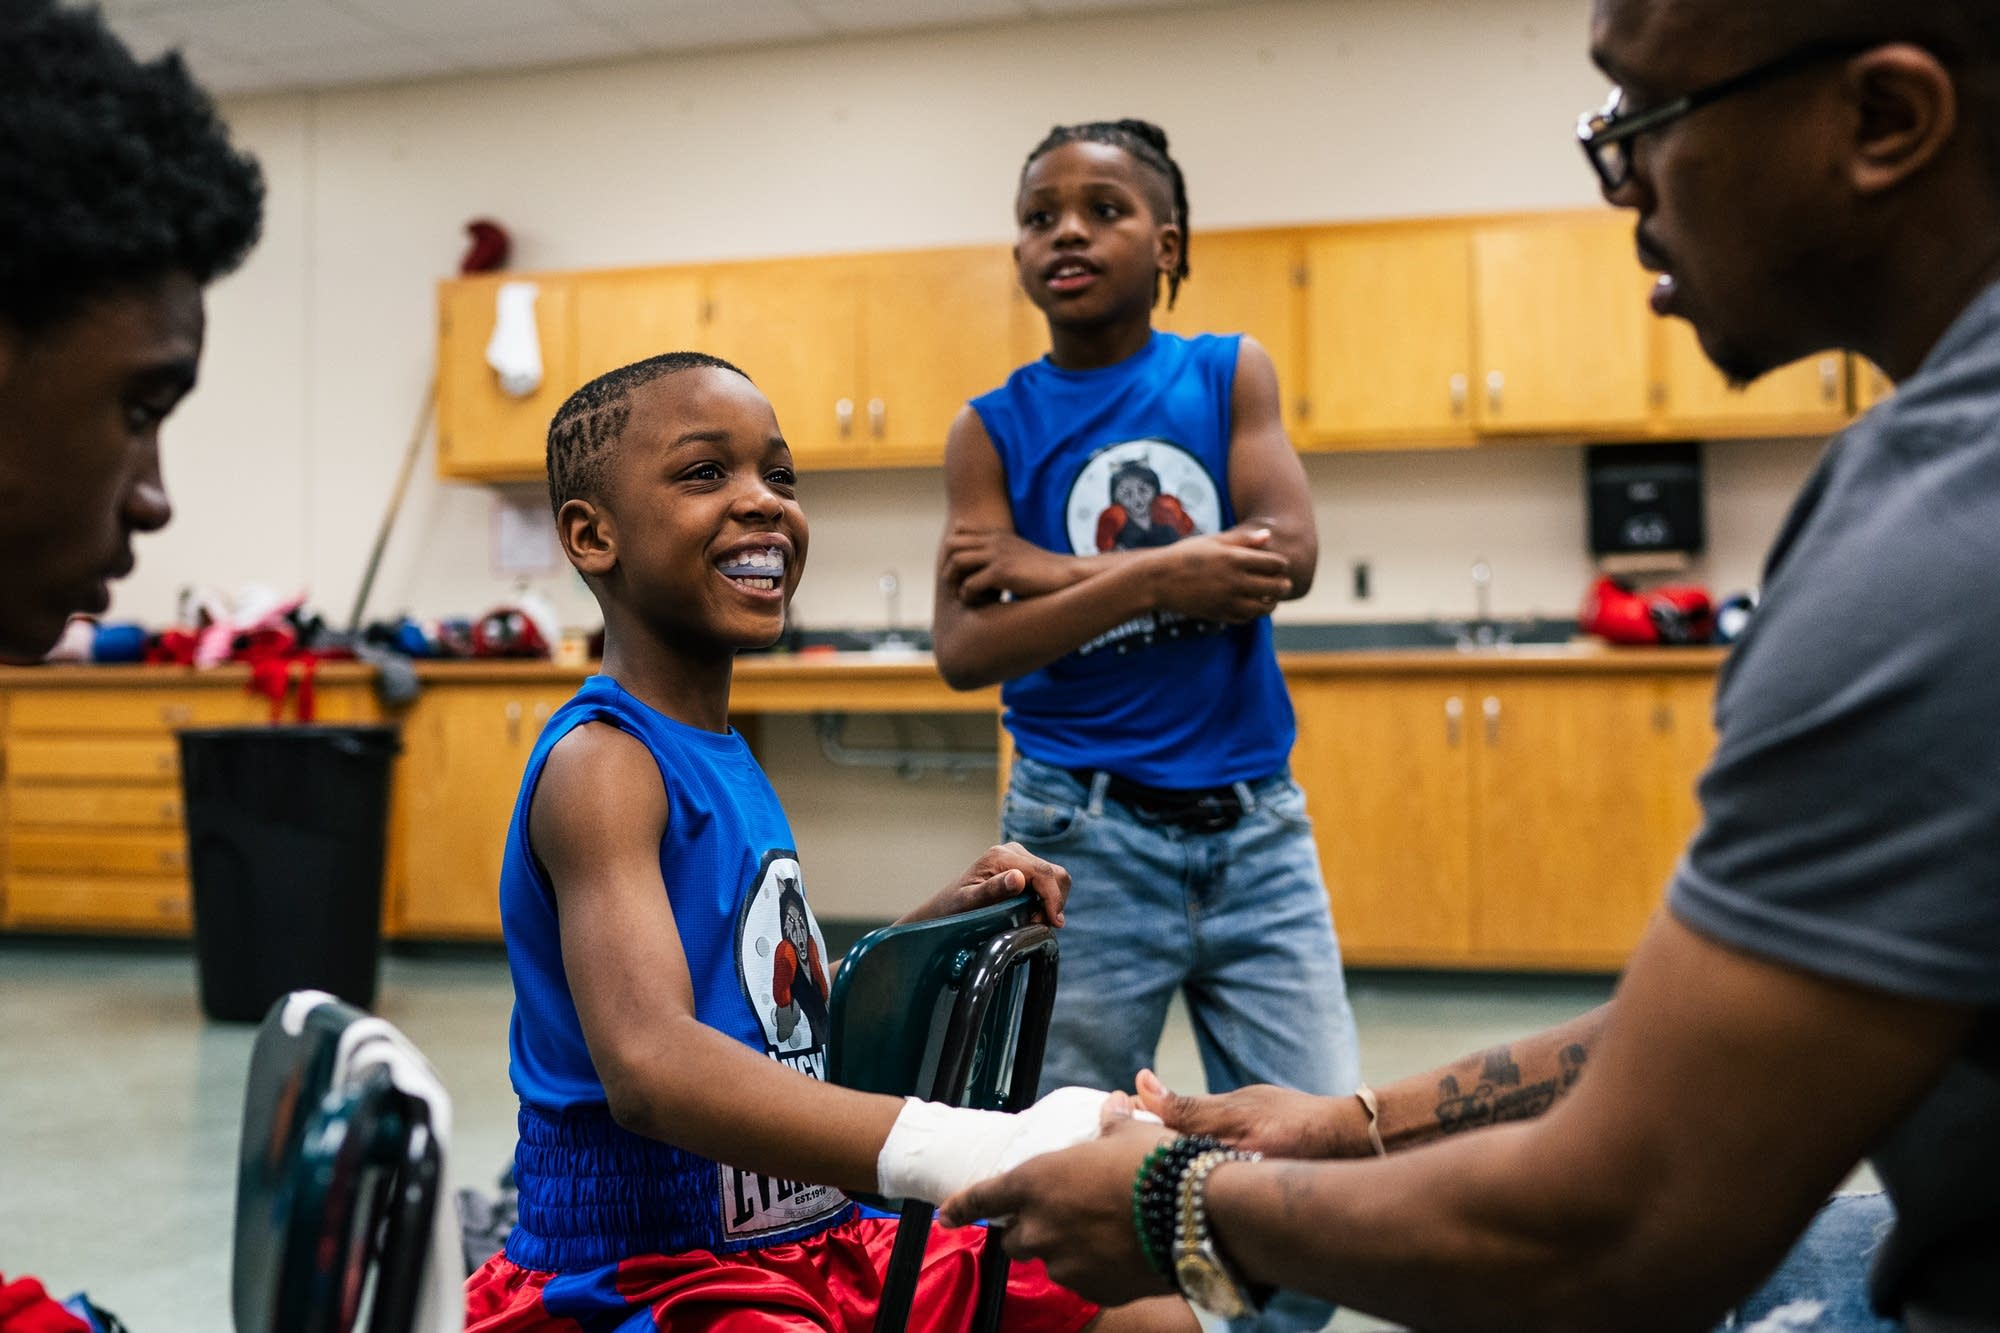 Eight-year-old Z'Karion Walker gets his hands wrapped.